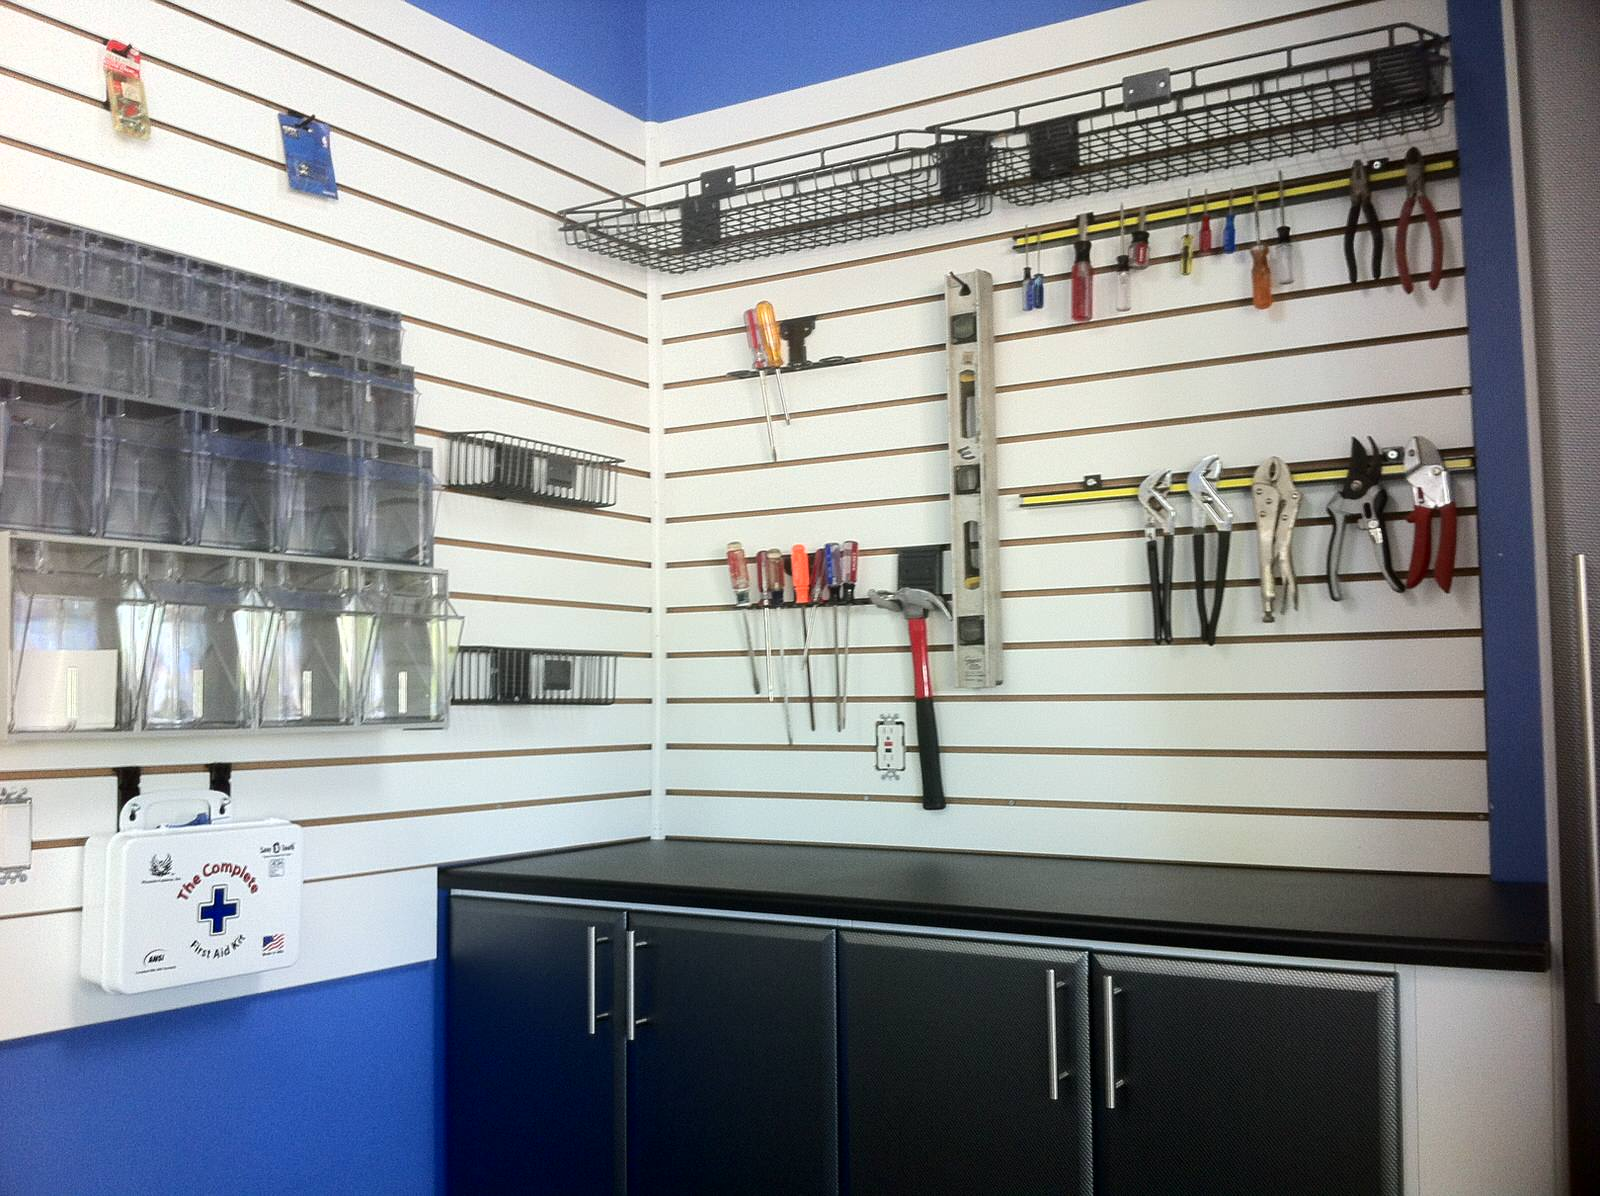 Garage Storage and with Hooks and Slatwall